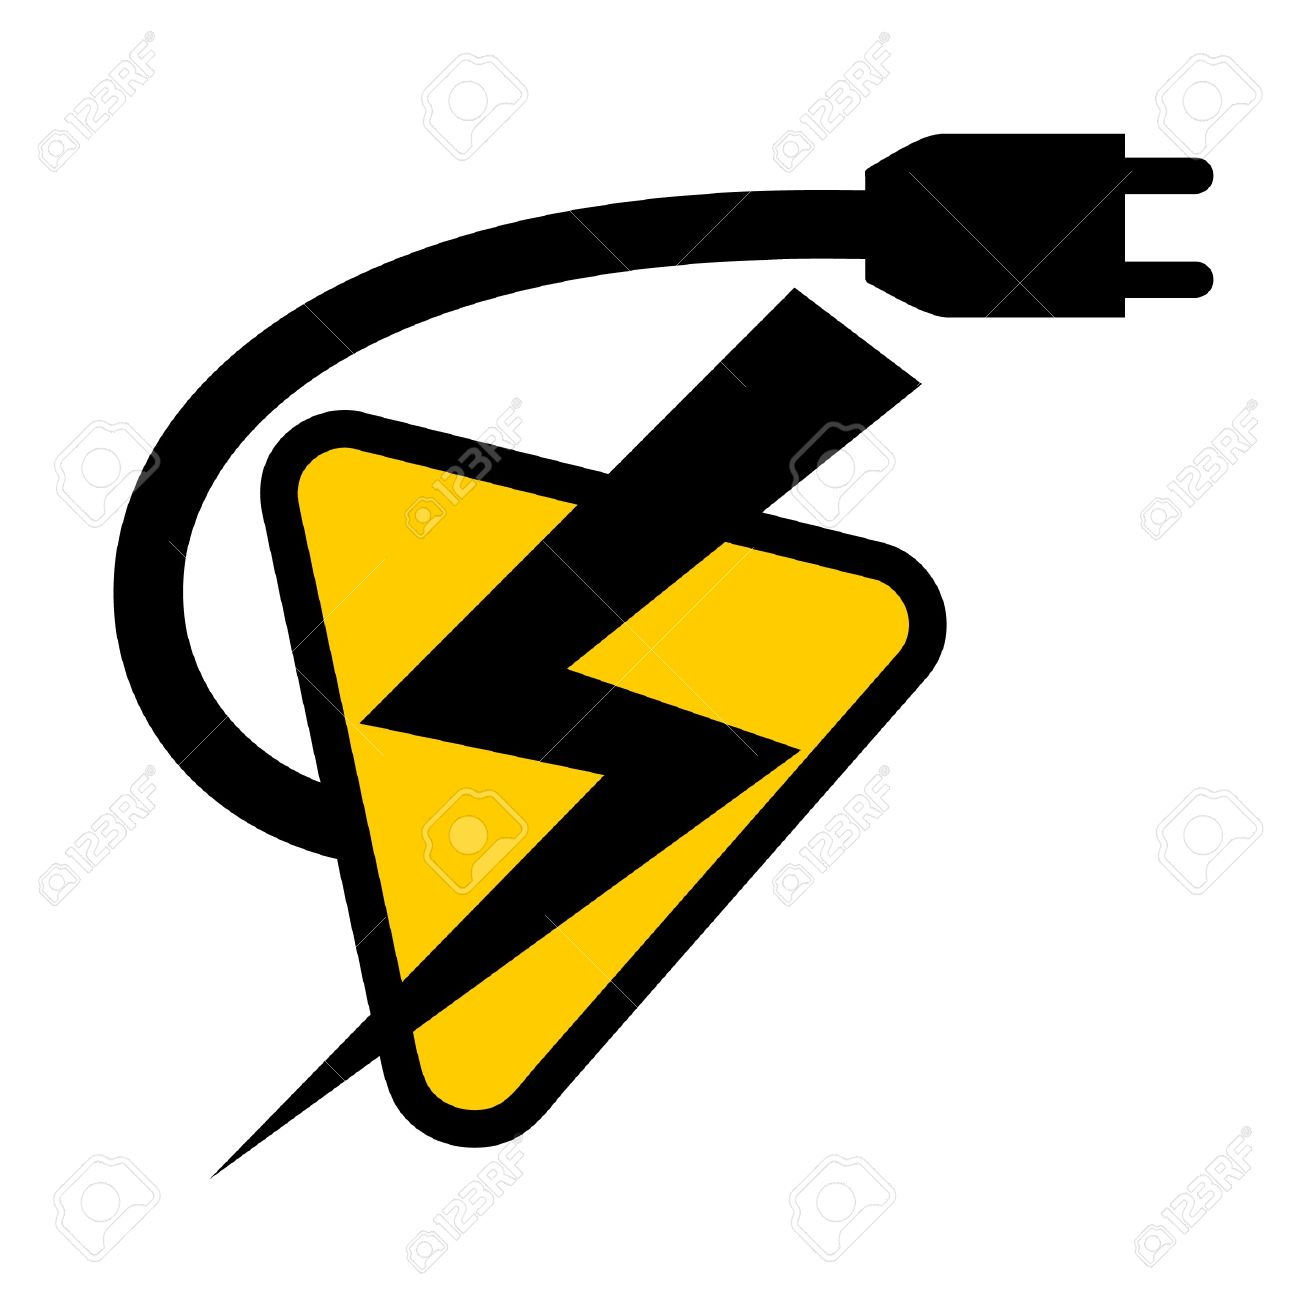 Electricity clipart freeuse Electricity Clipart | Free download best Electricity Clipart on ... freeuse